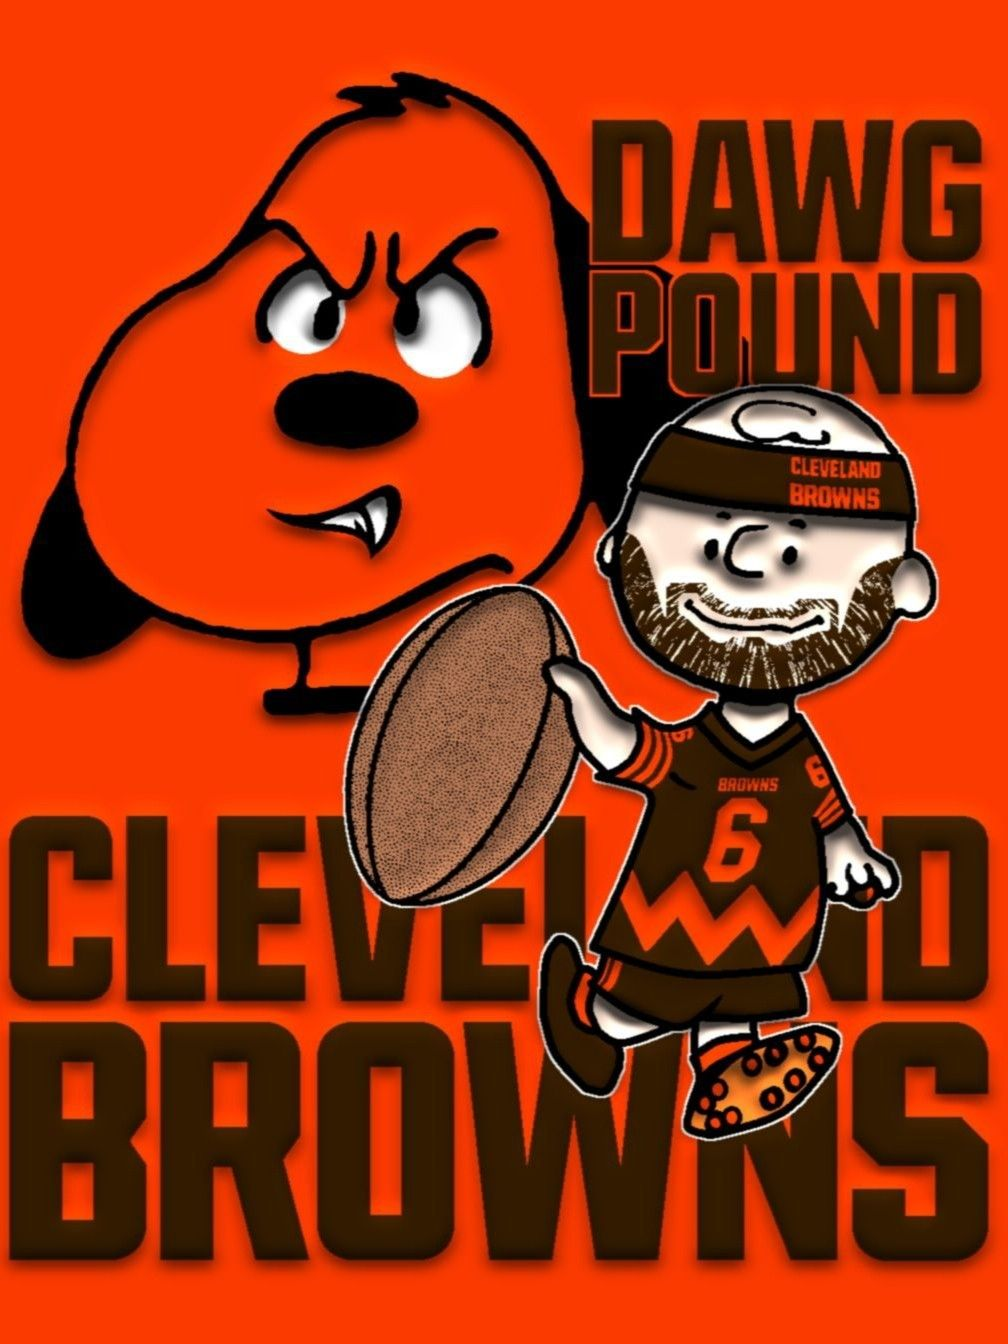 Pin by Jason Streets on Cleveland Browns Cleveland